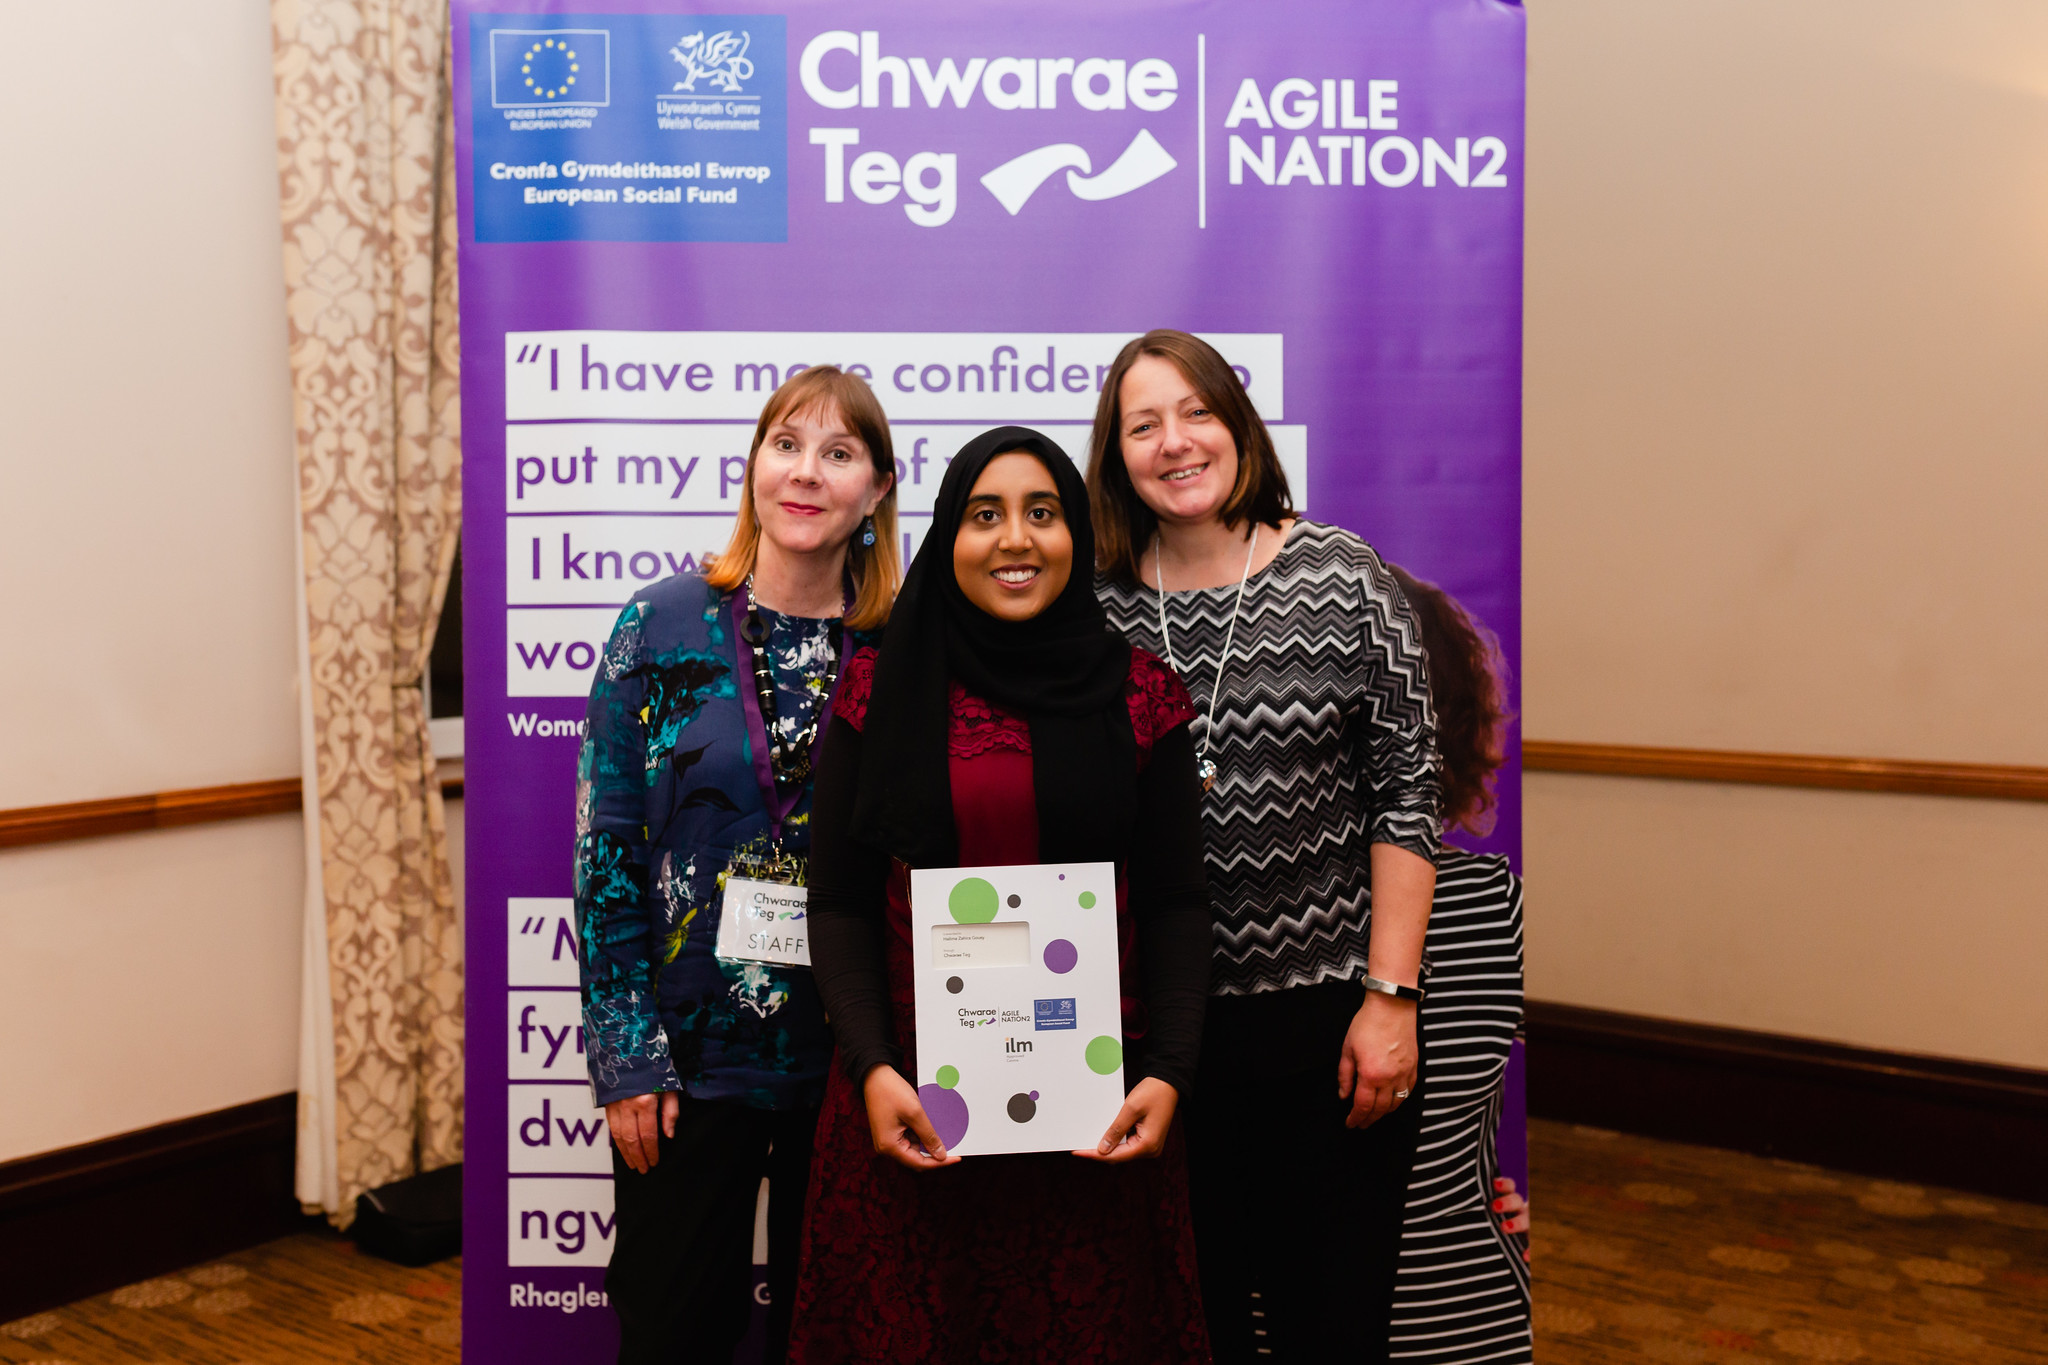 Zahira Gousy graduating from the ILM career devlopment programme, with members of the Chwarae Teg team.